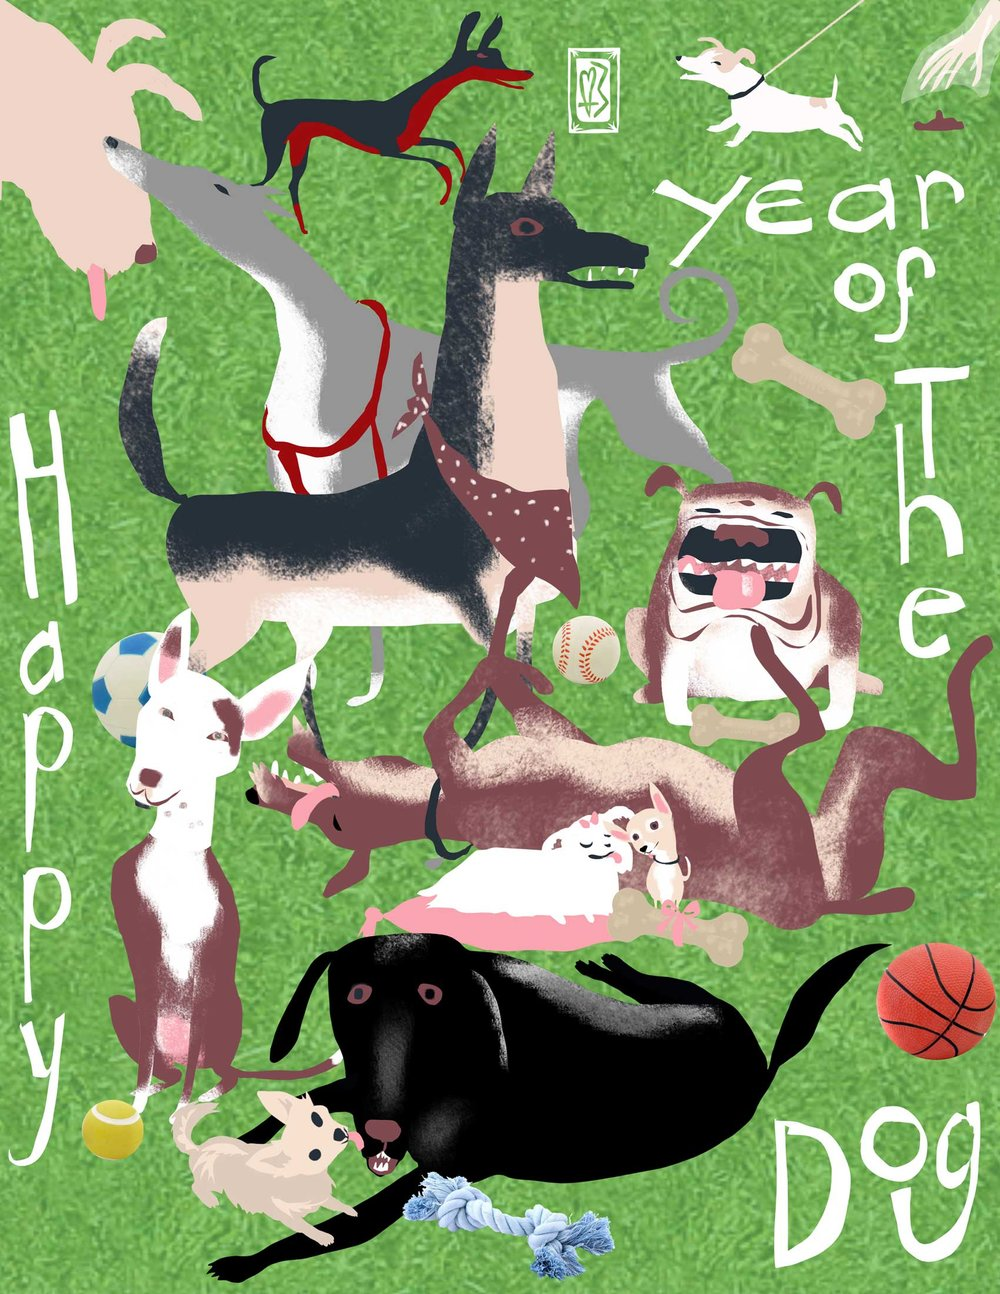 year-of-the-dog.jpg